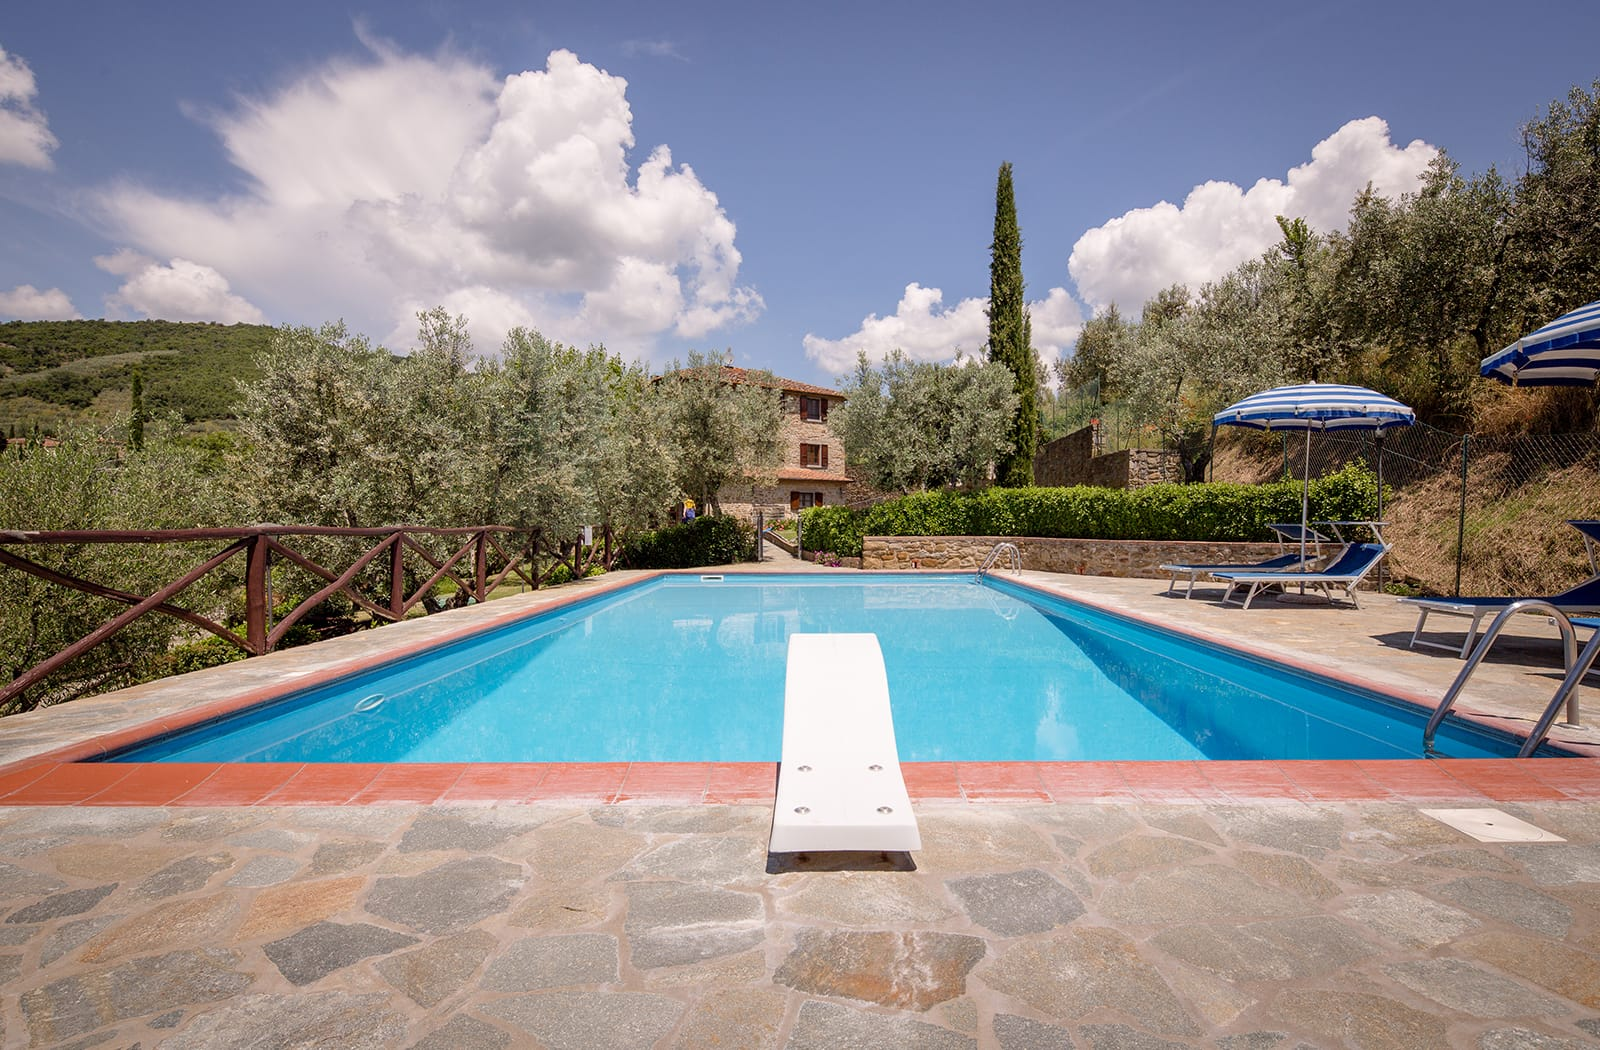 Book your holiday in Tuscany in a beautiful Agriturismo in Cortona and Castiglion Fiorentino